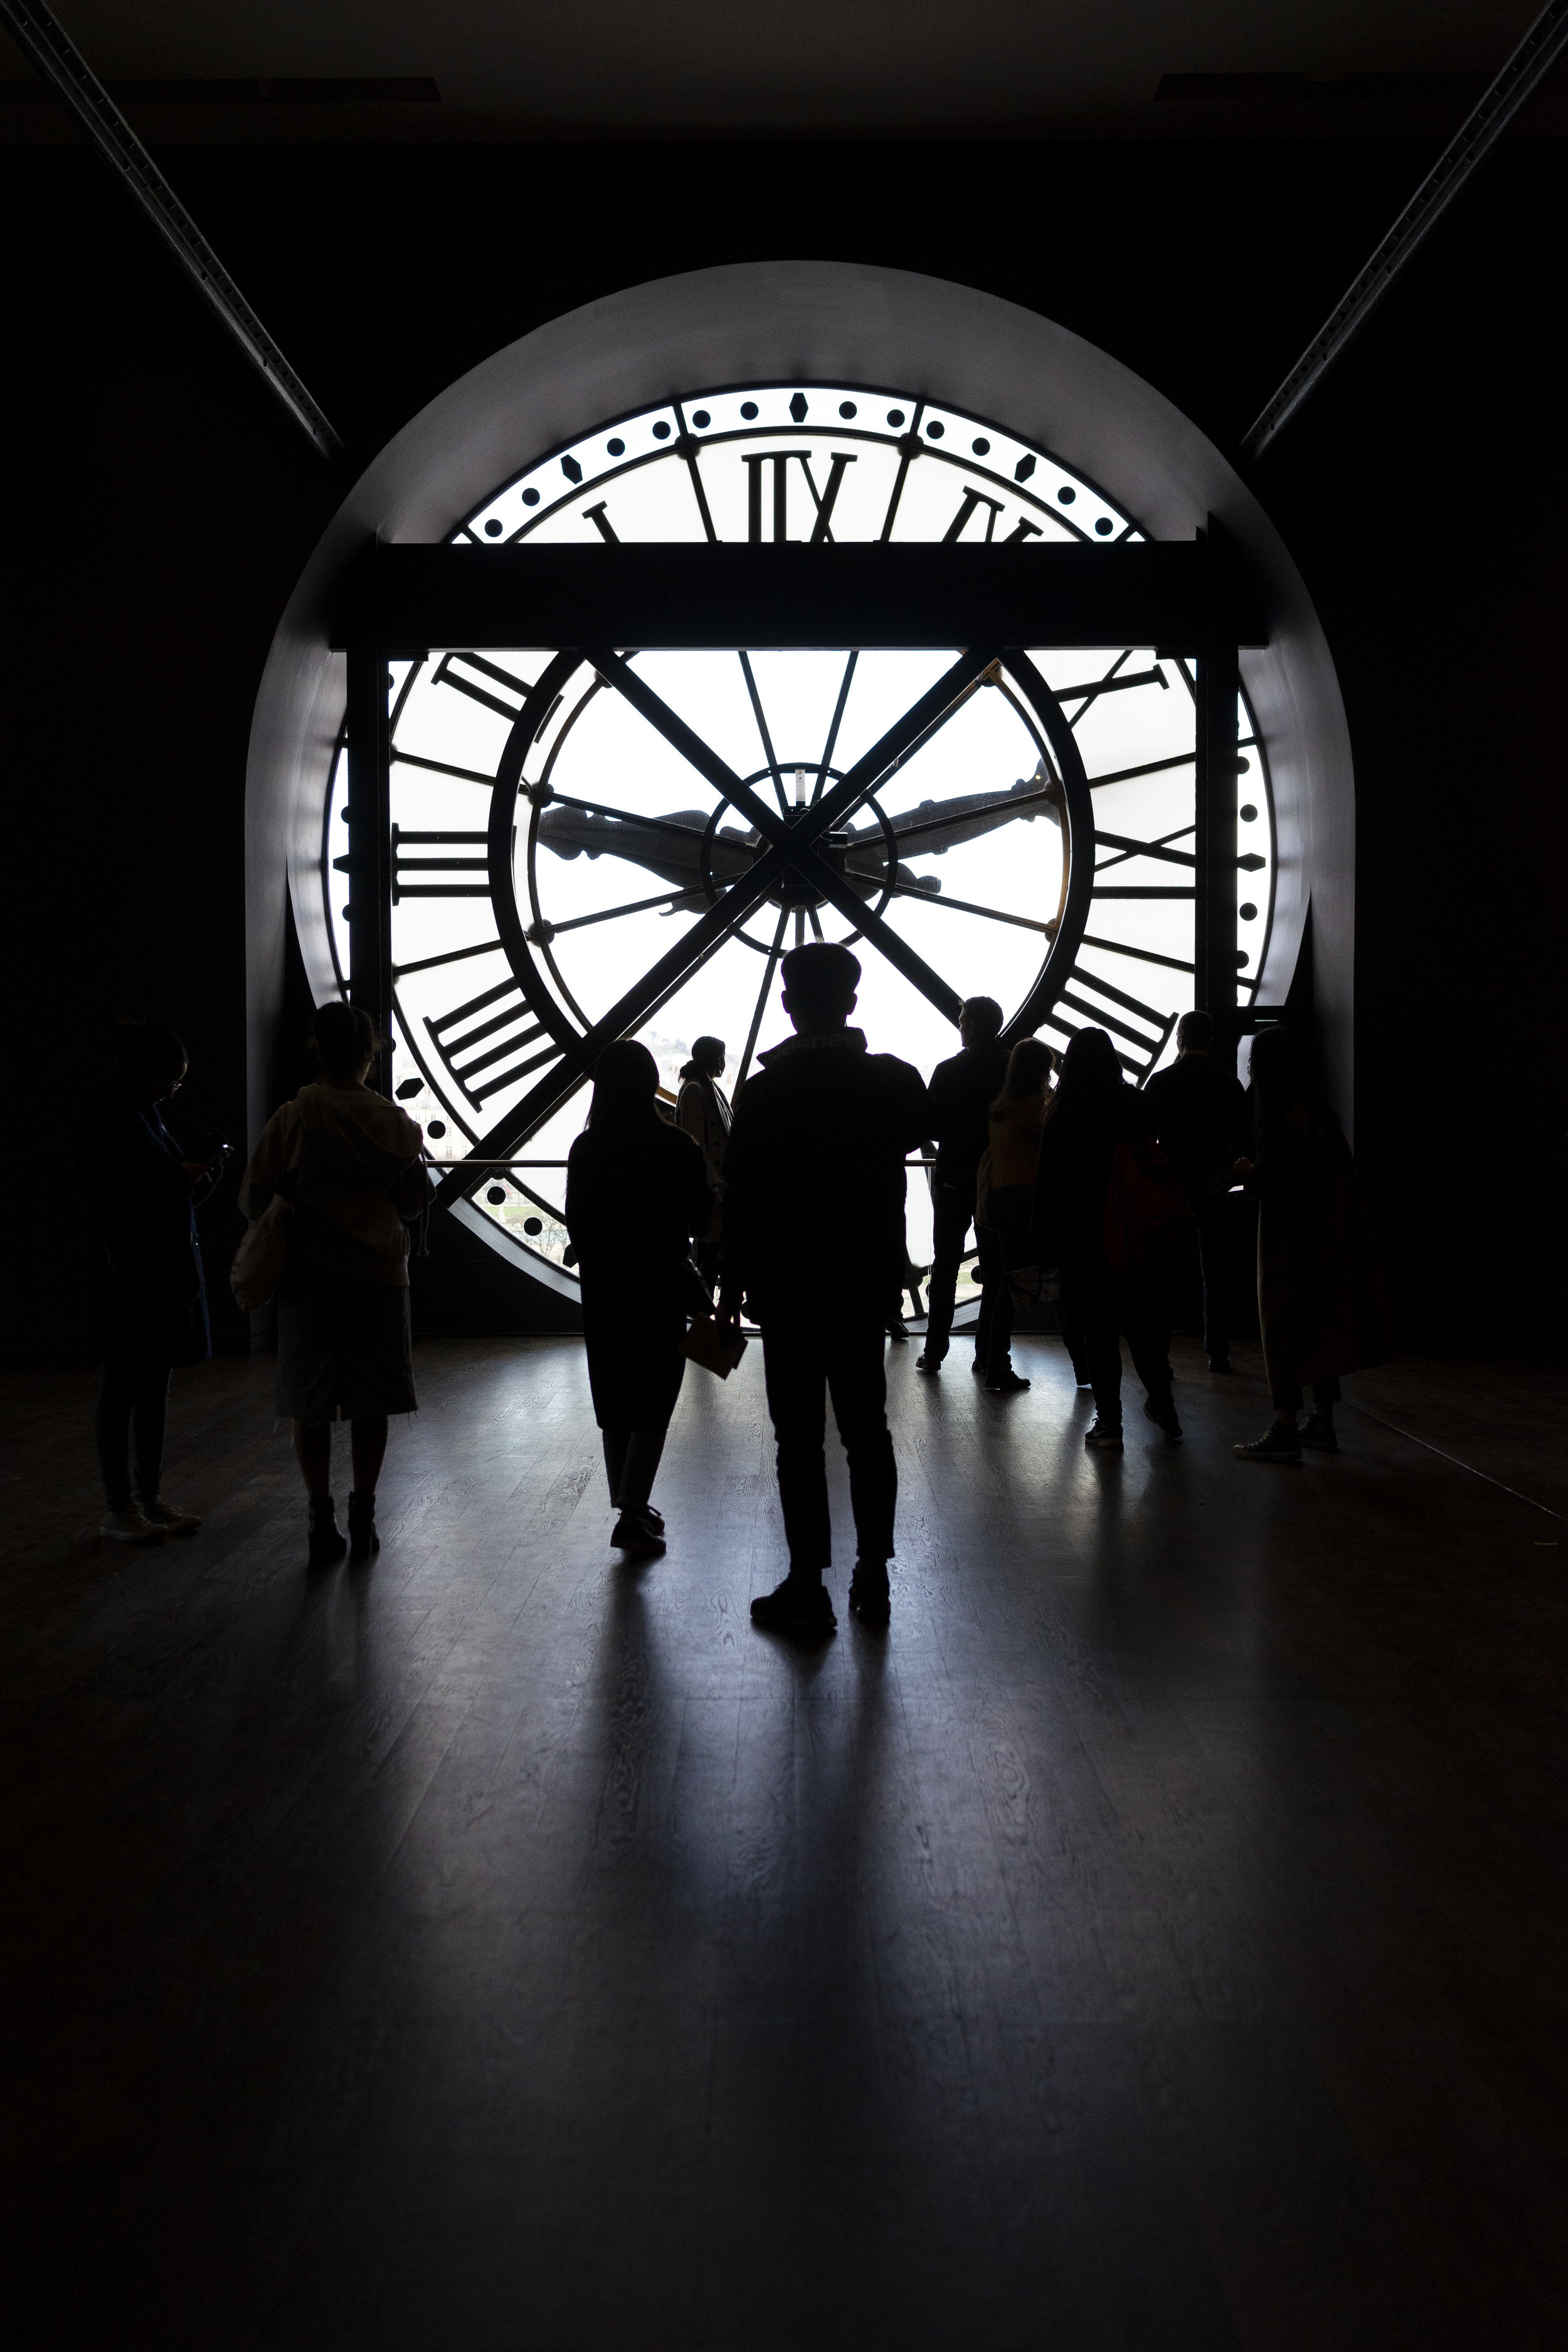 A group of visitors at the Musée d'Orsay are silhouetted as they look through the clock face to see the city of Paris. (Elise Marie Photography)